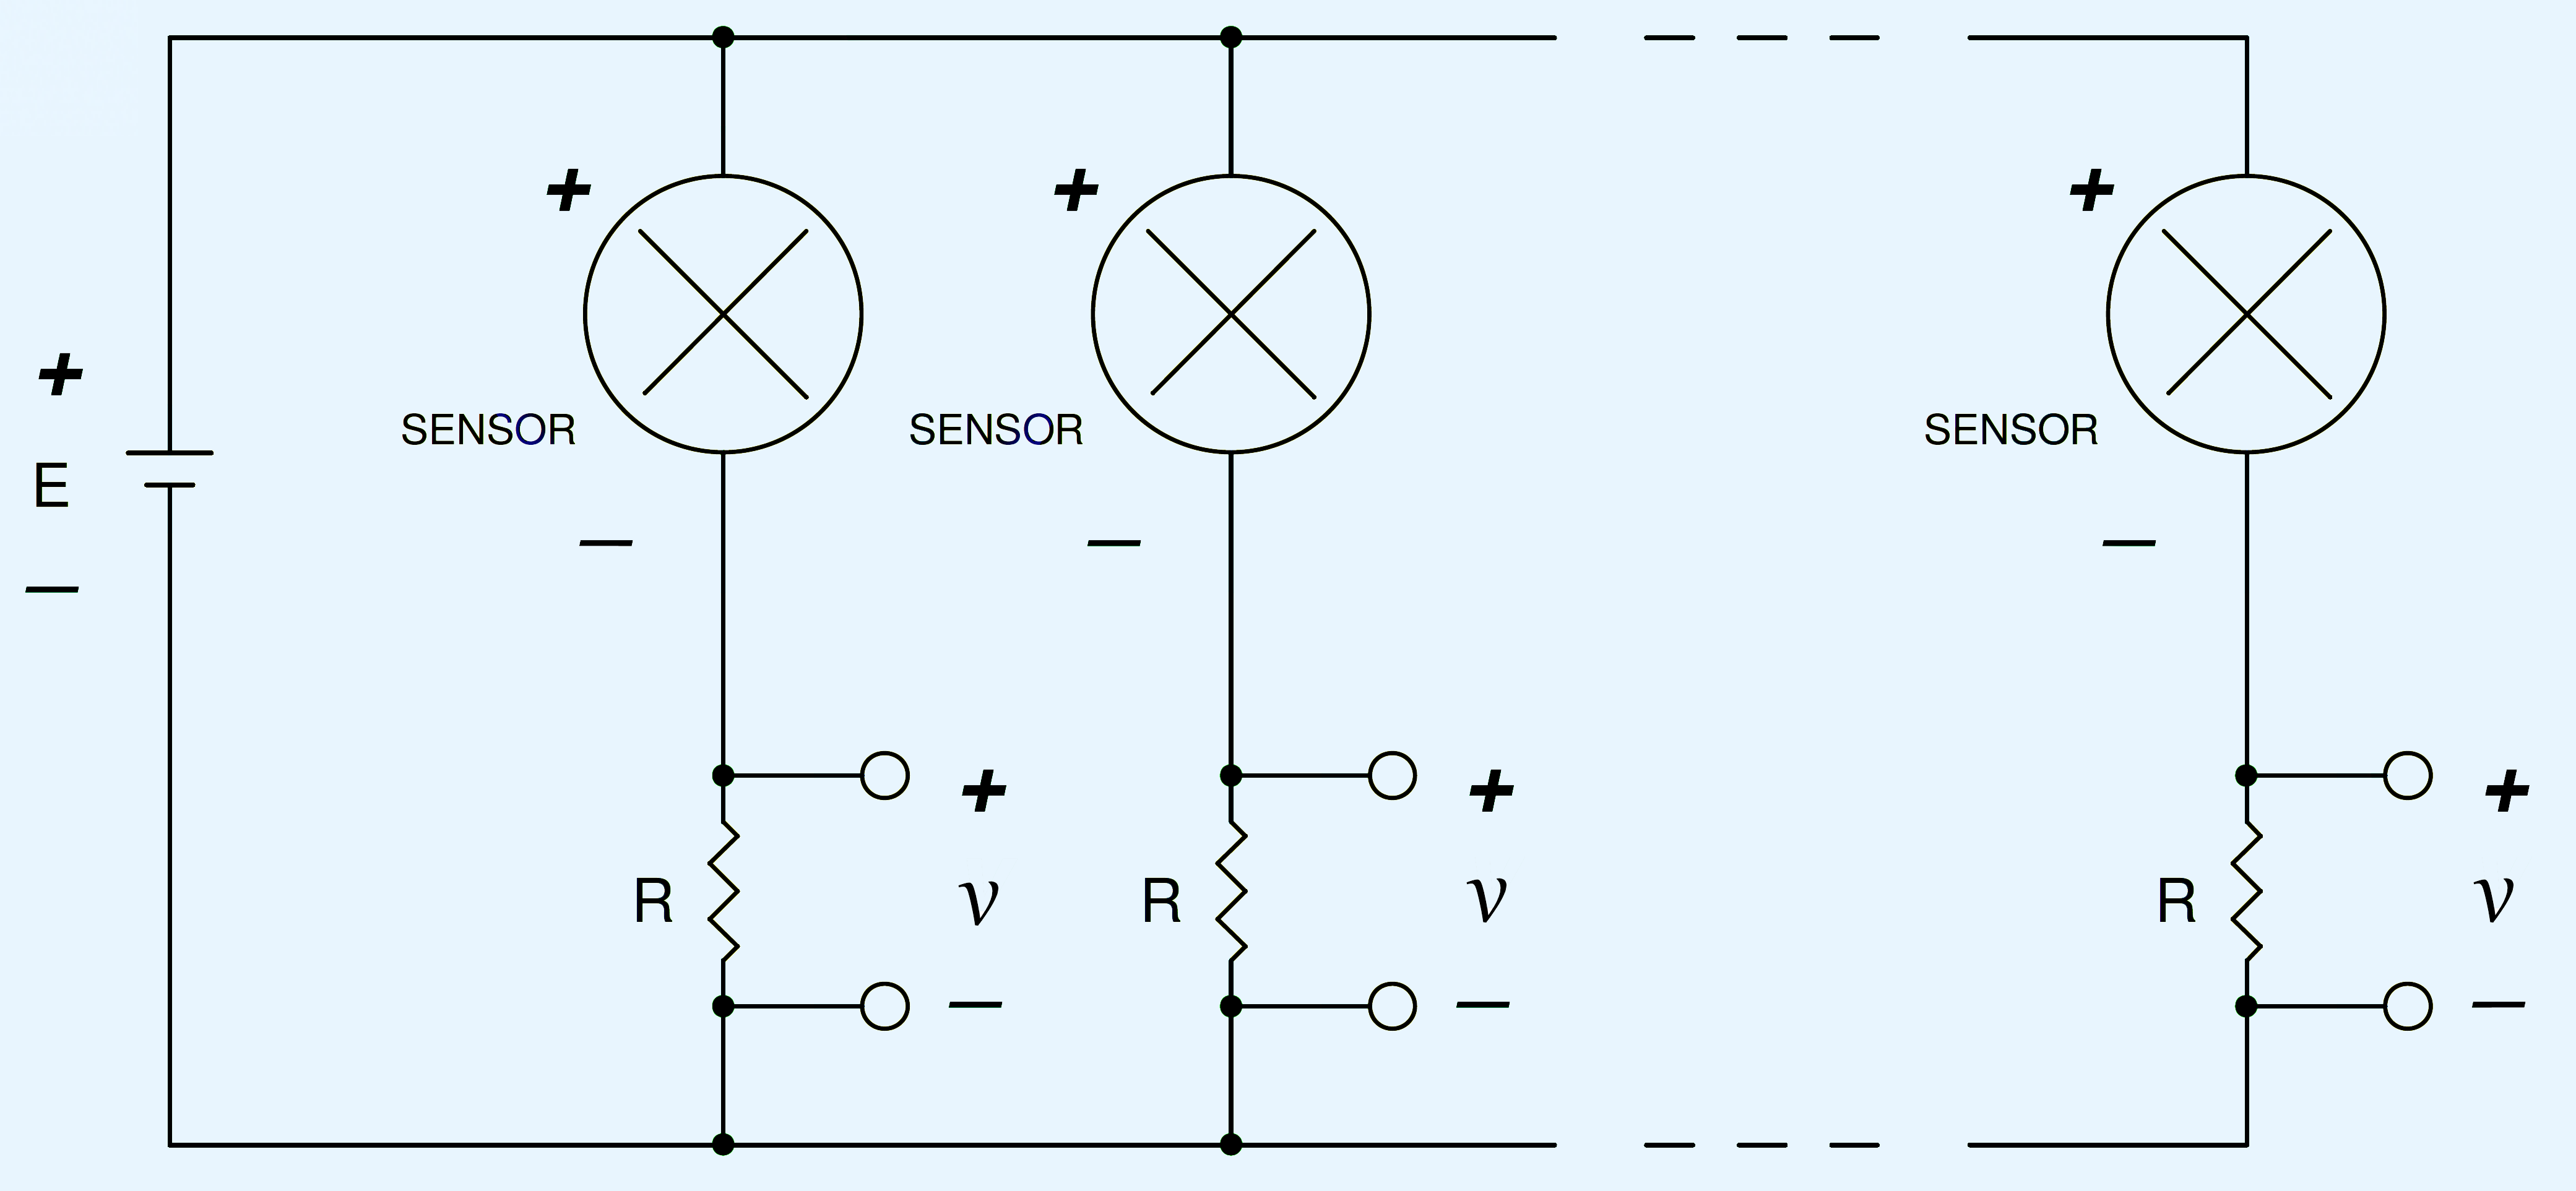 Schematic of two or more 2-wire 4-20 mA sensors powered by a